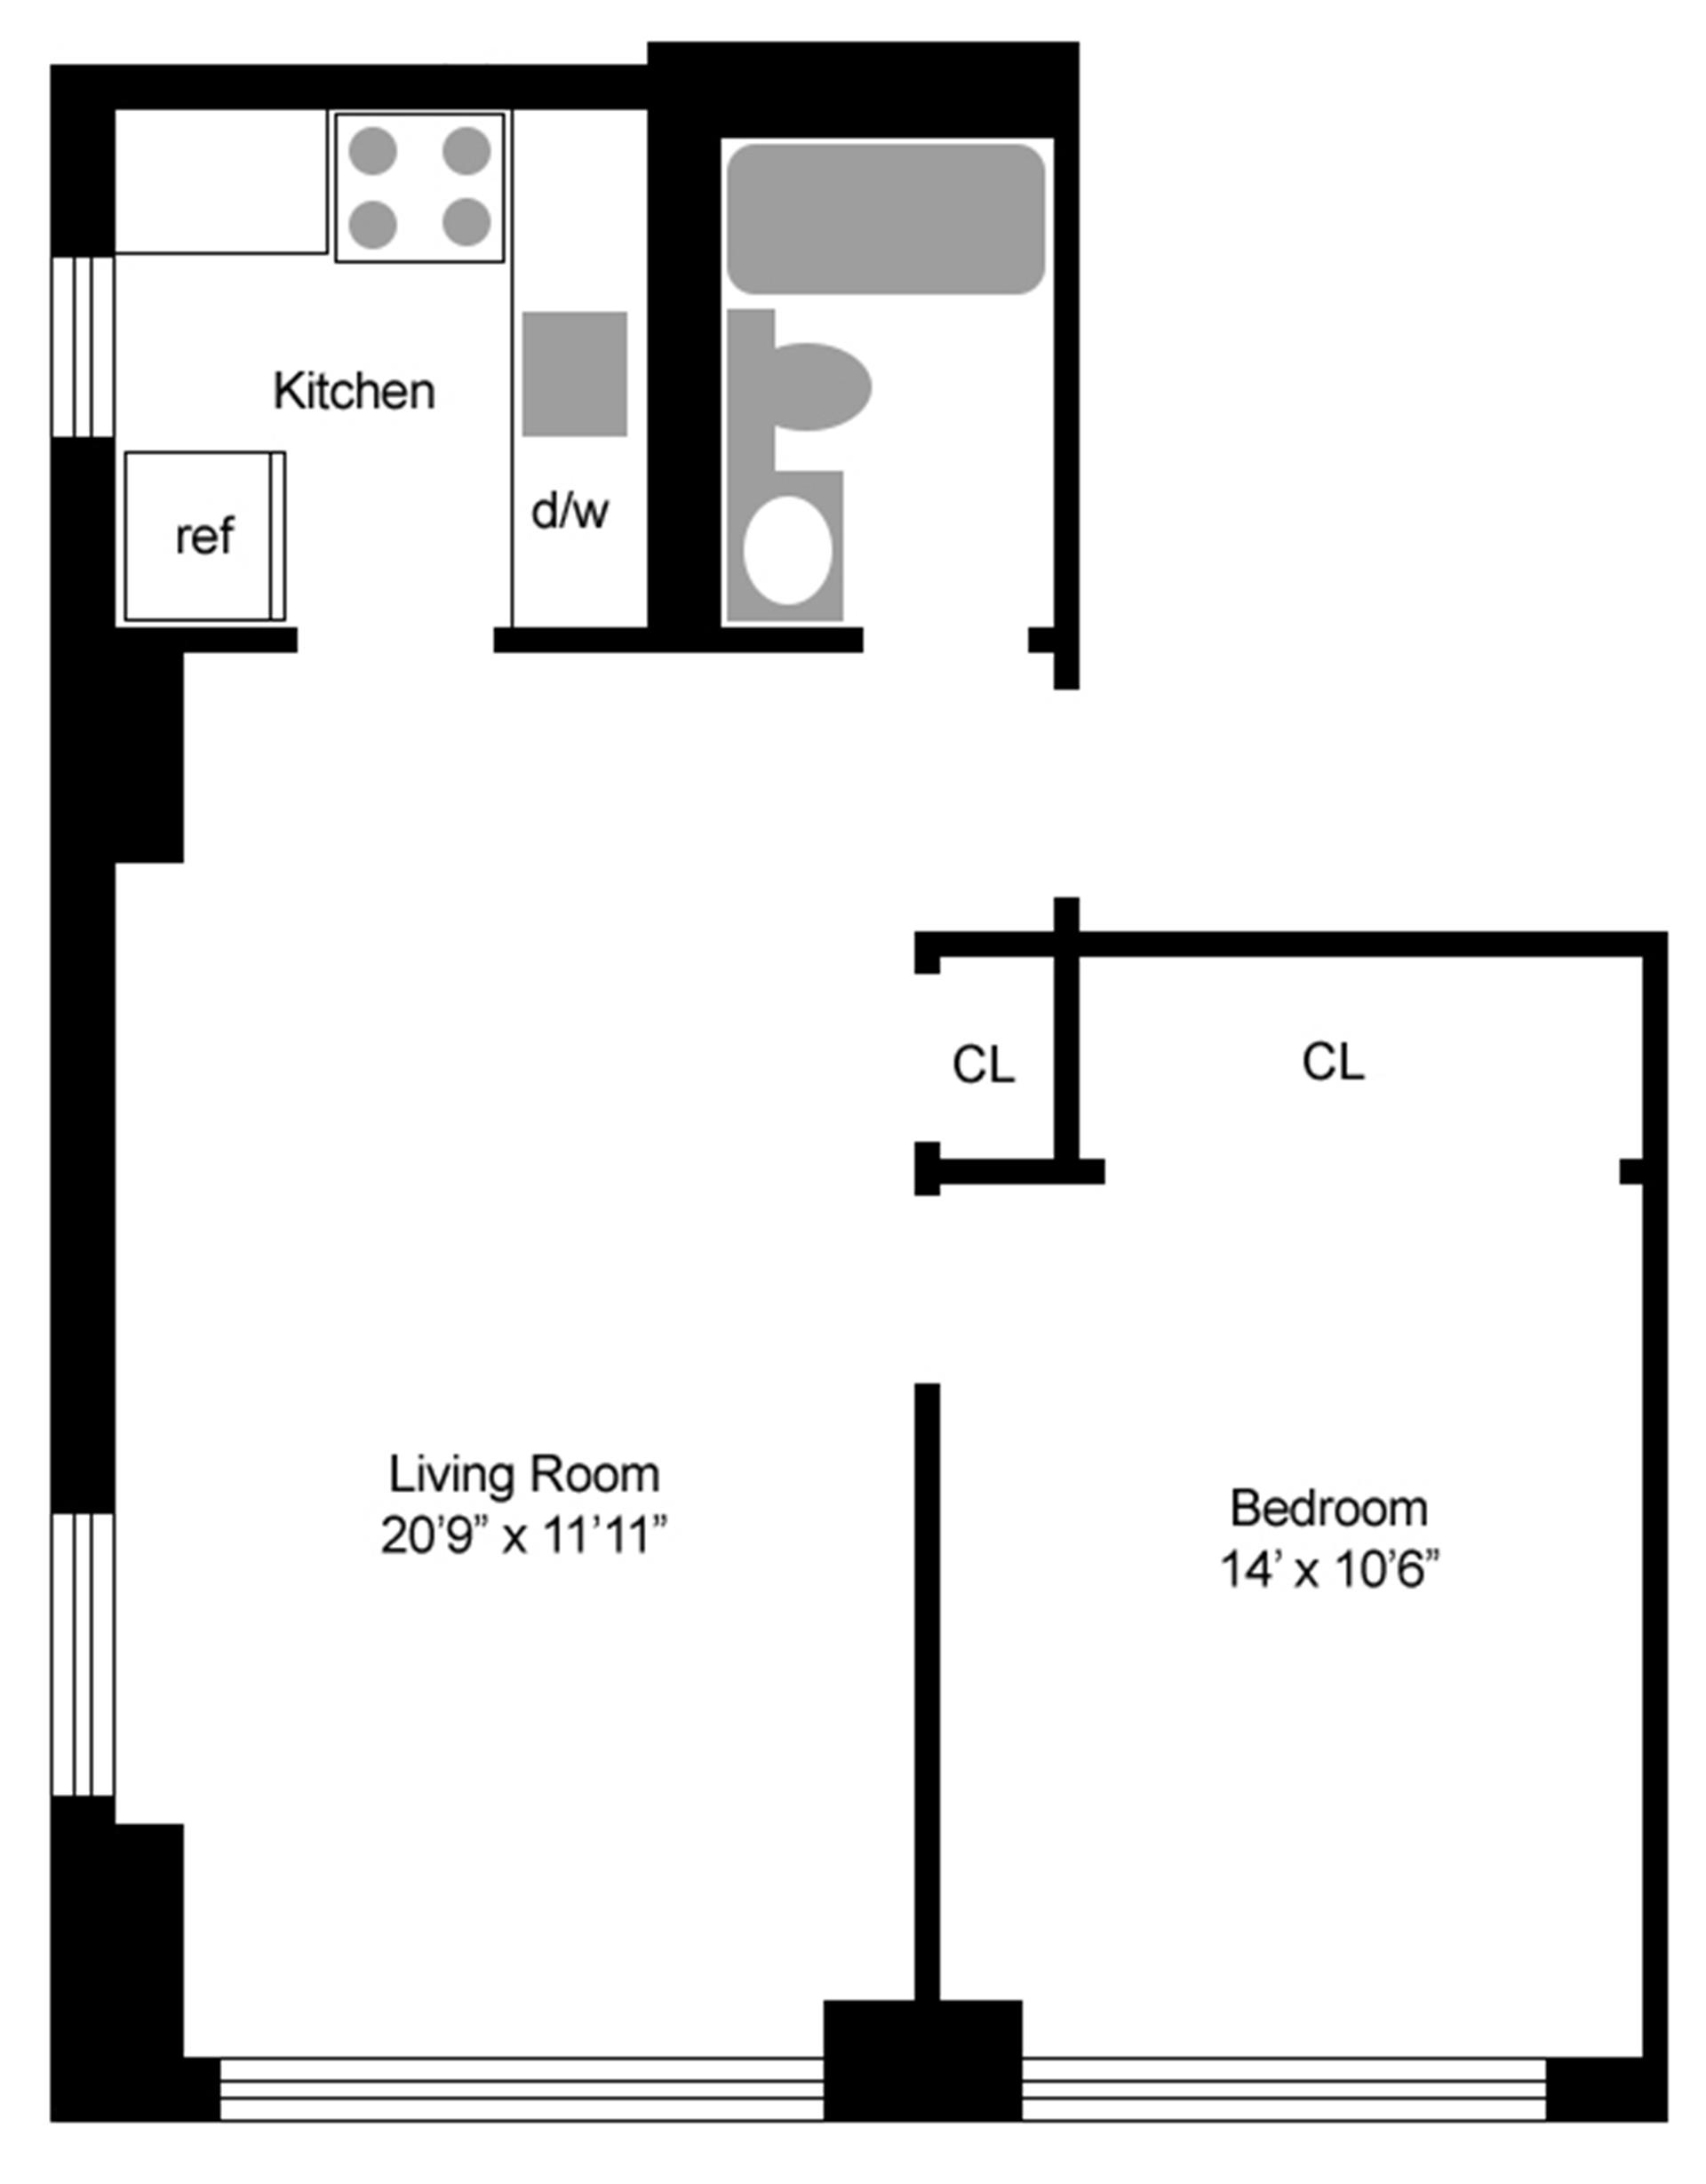 Floor plan of 236 East 47th St, 29C - Turtle Bay, New York